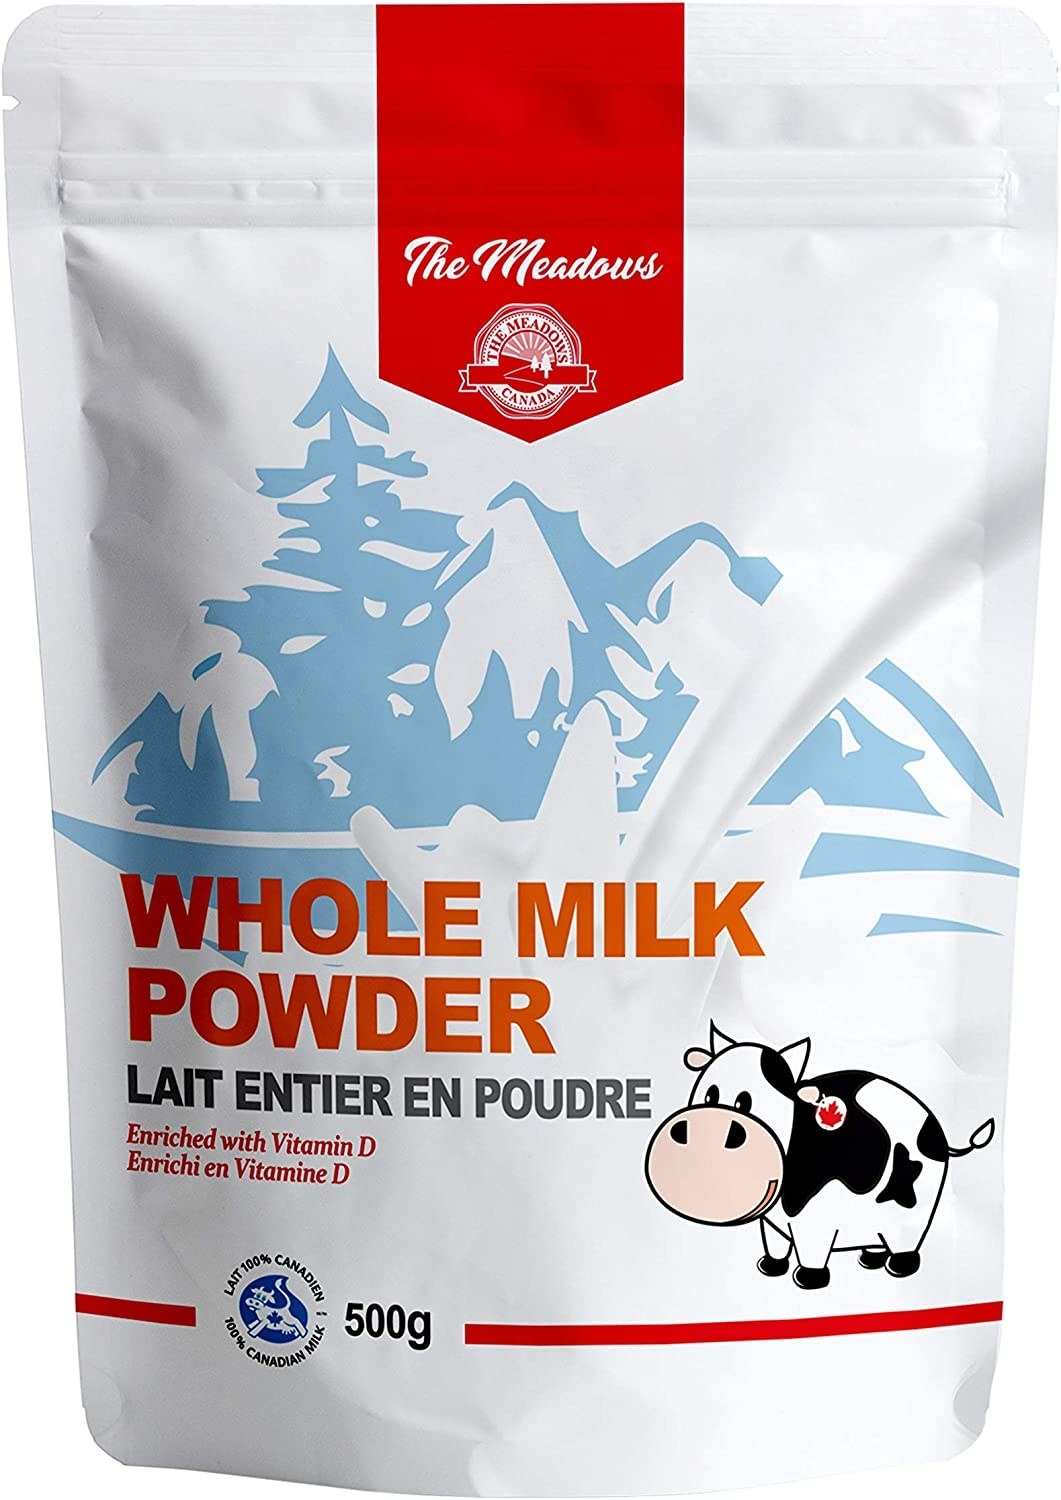 A 500g bag of whole milk powder